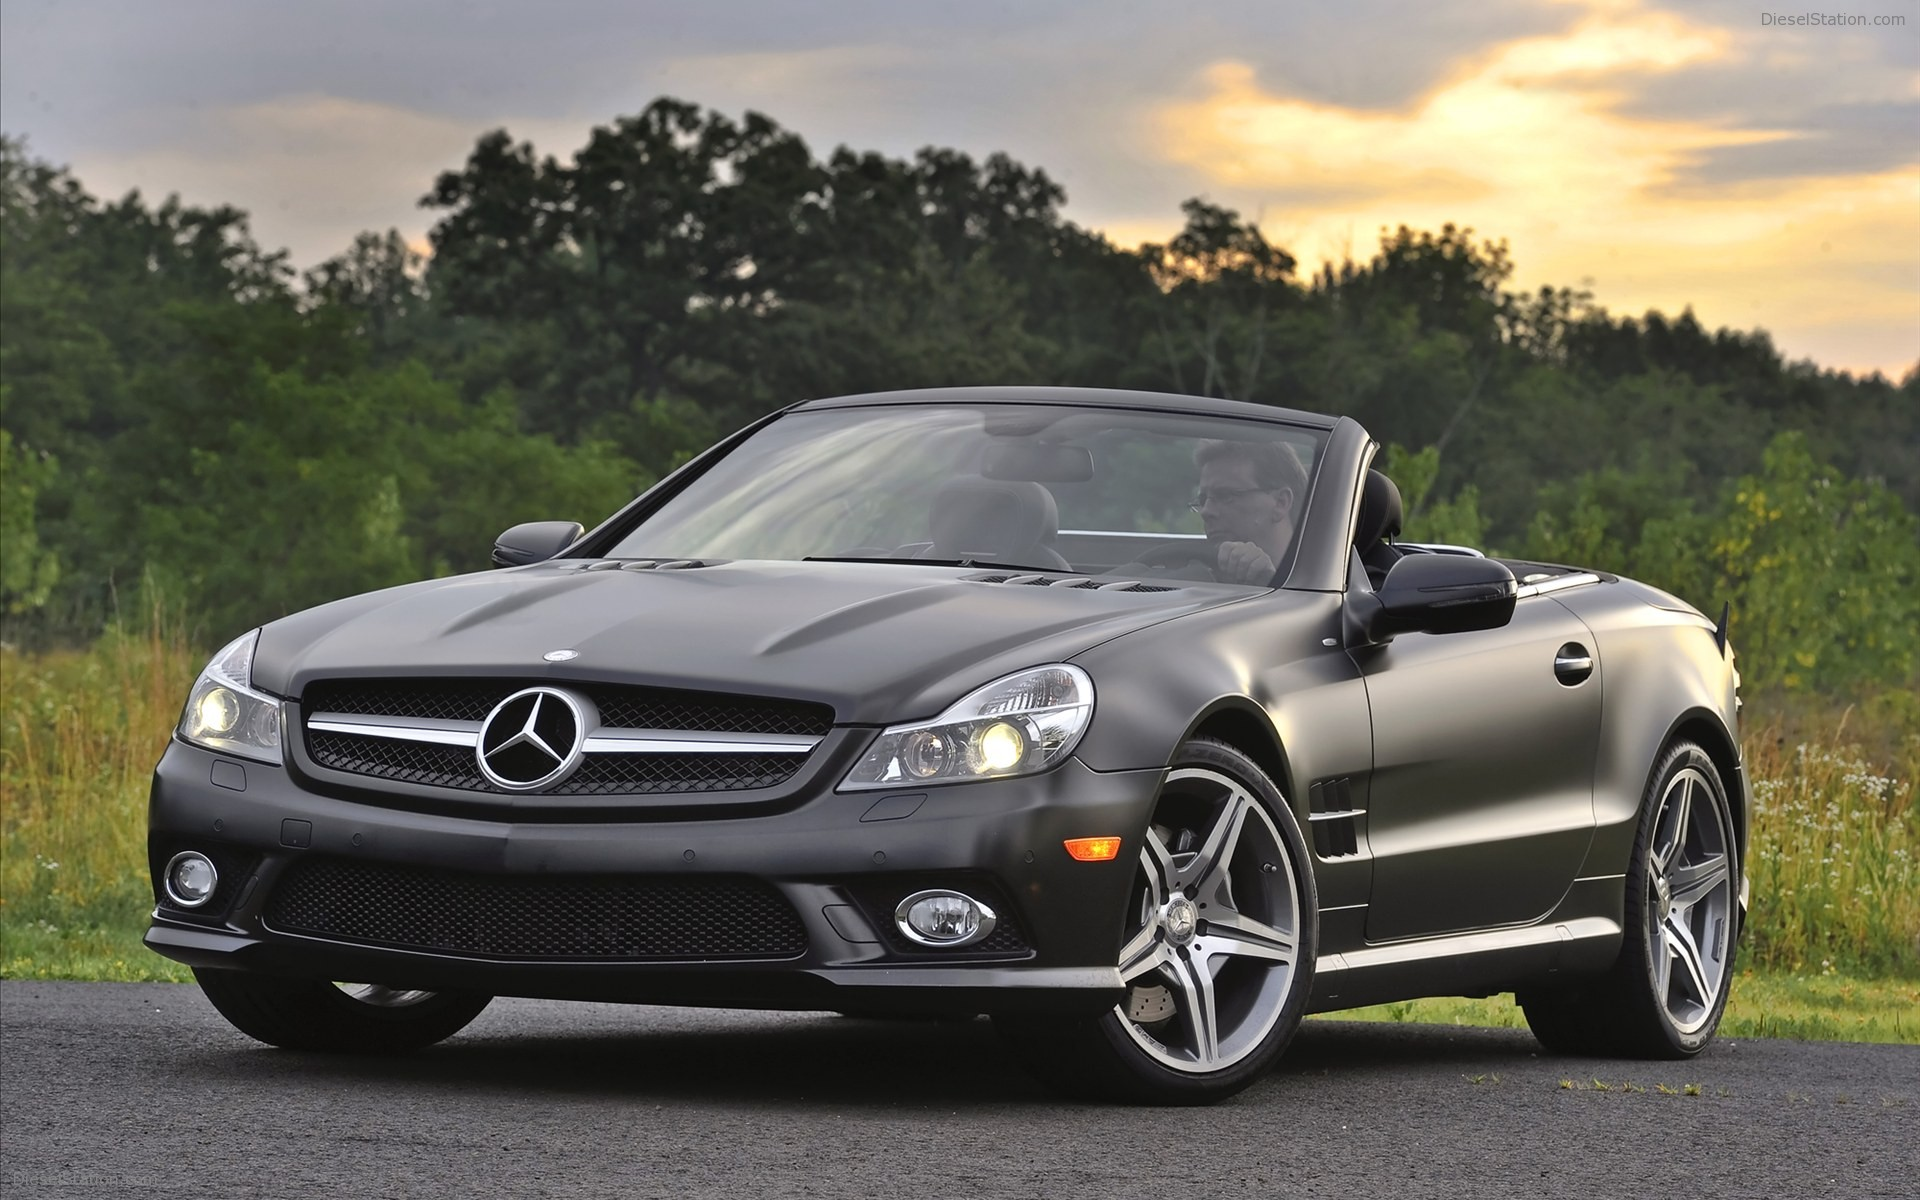 2010 Mercedes-Benz SL Photos, Informations, Articles ...